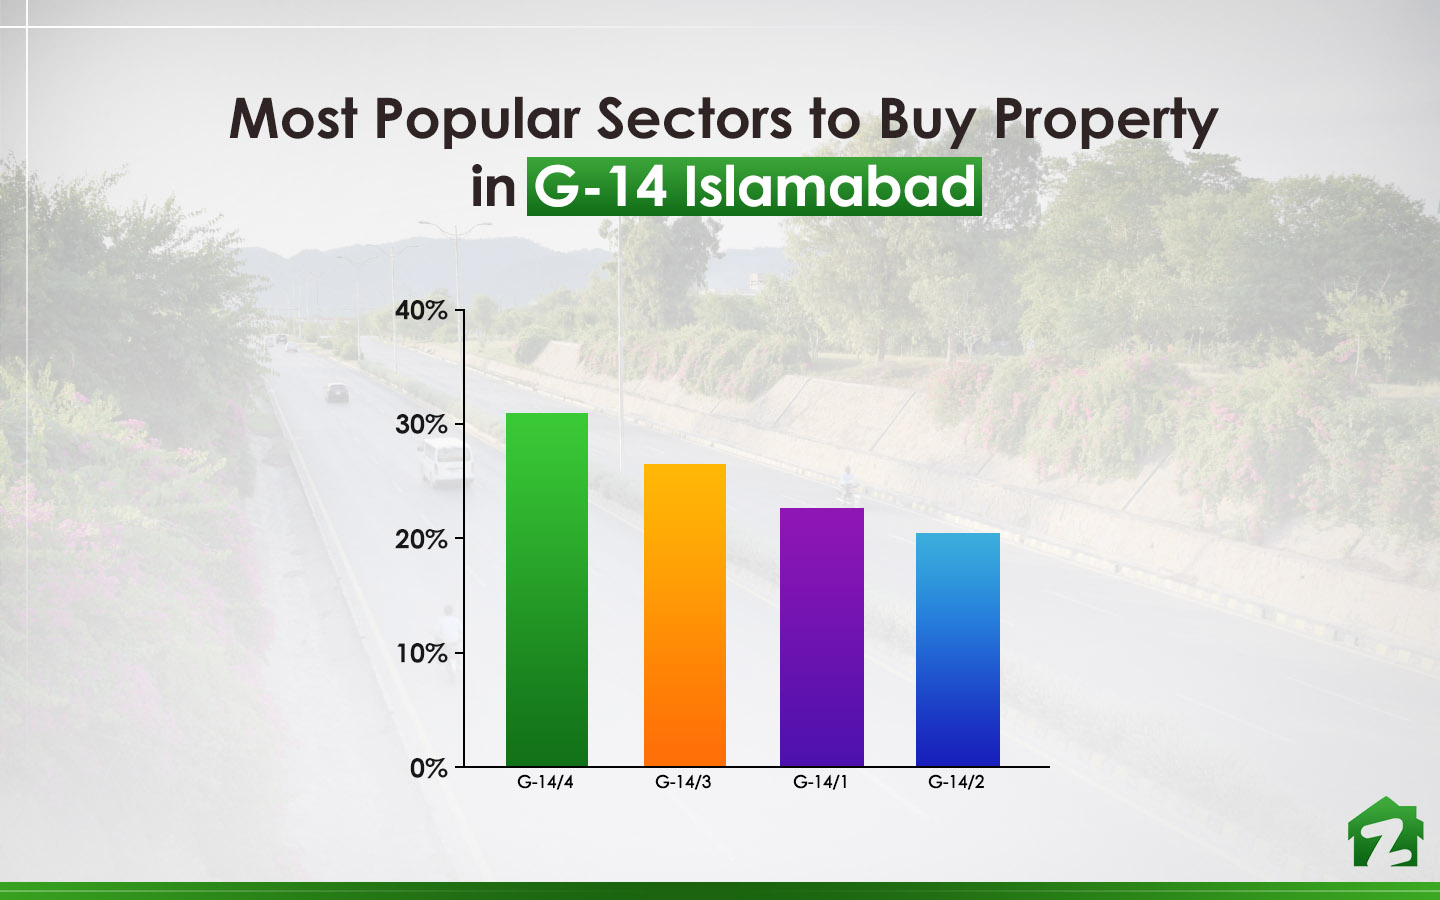 The Popular Sectors to Buy Property in G-14 Islamabad